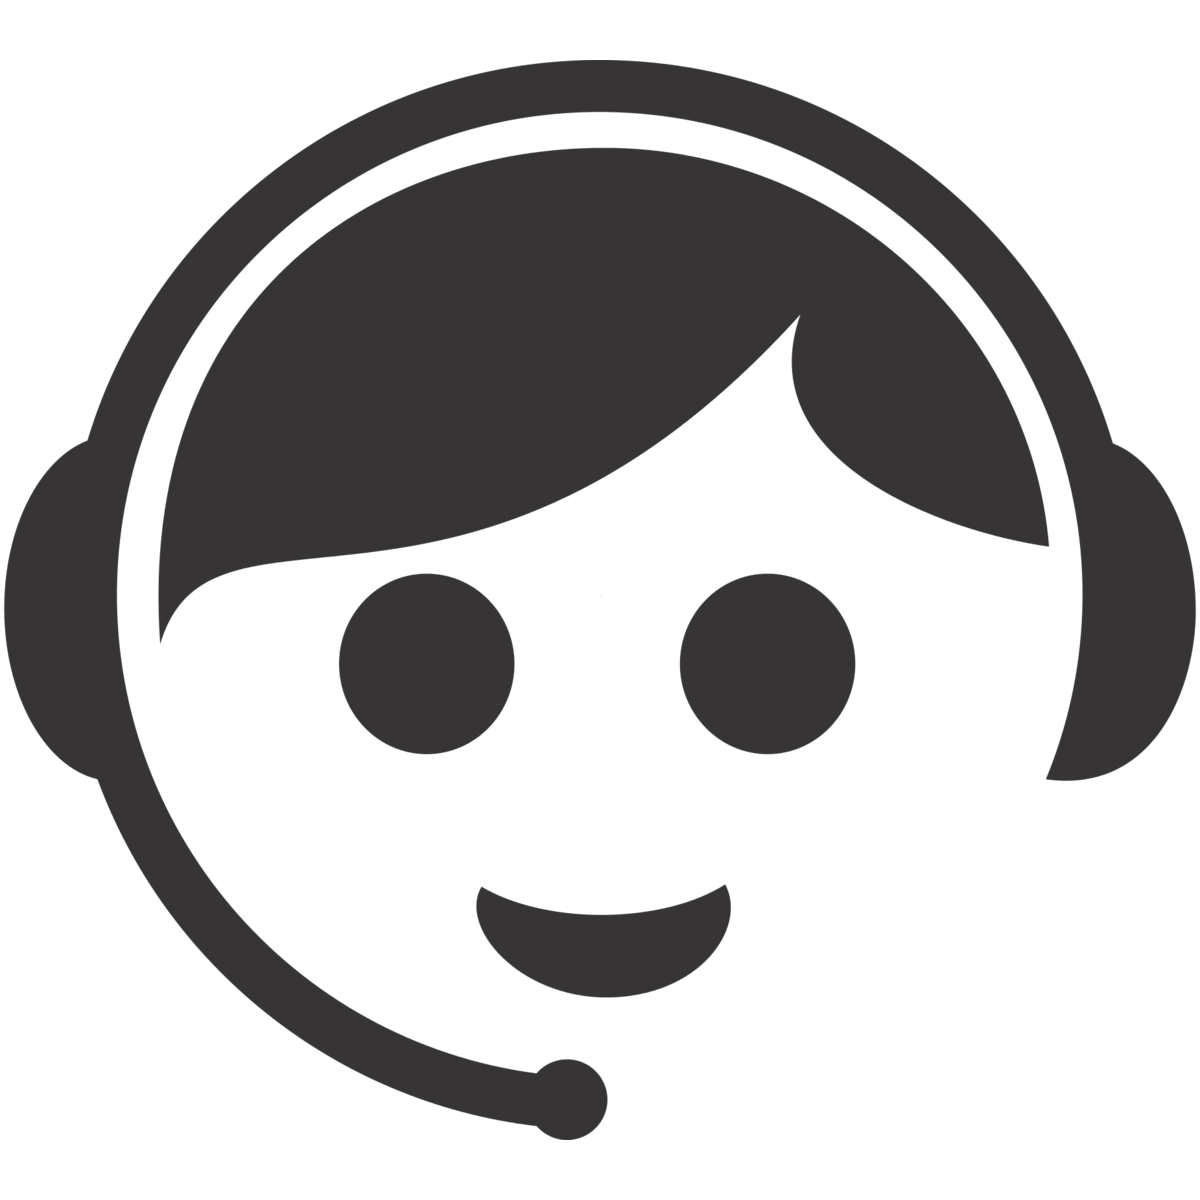 Customer Service Icon Png #2291 - Free Icons and PNG Backgrounds